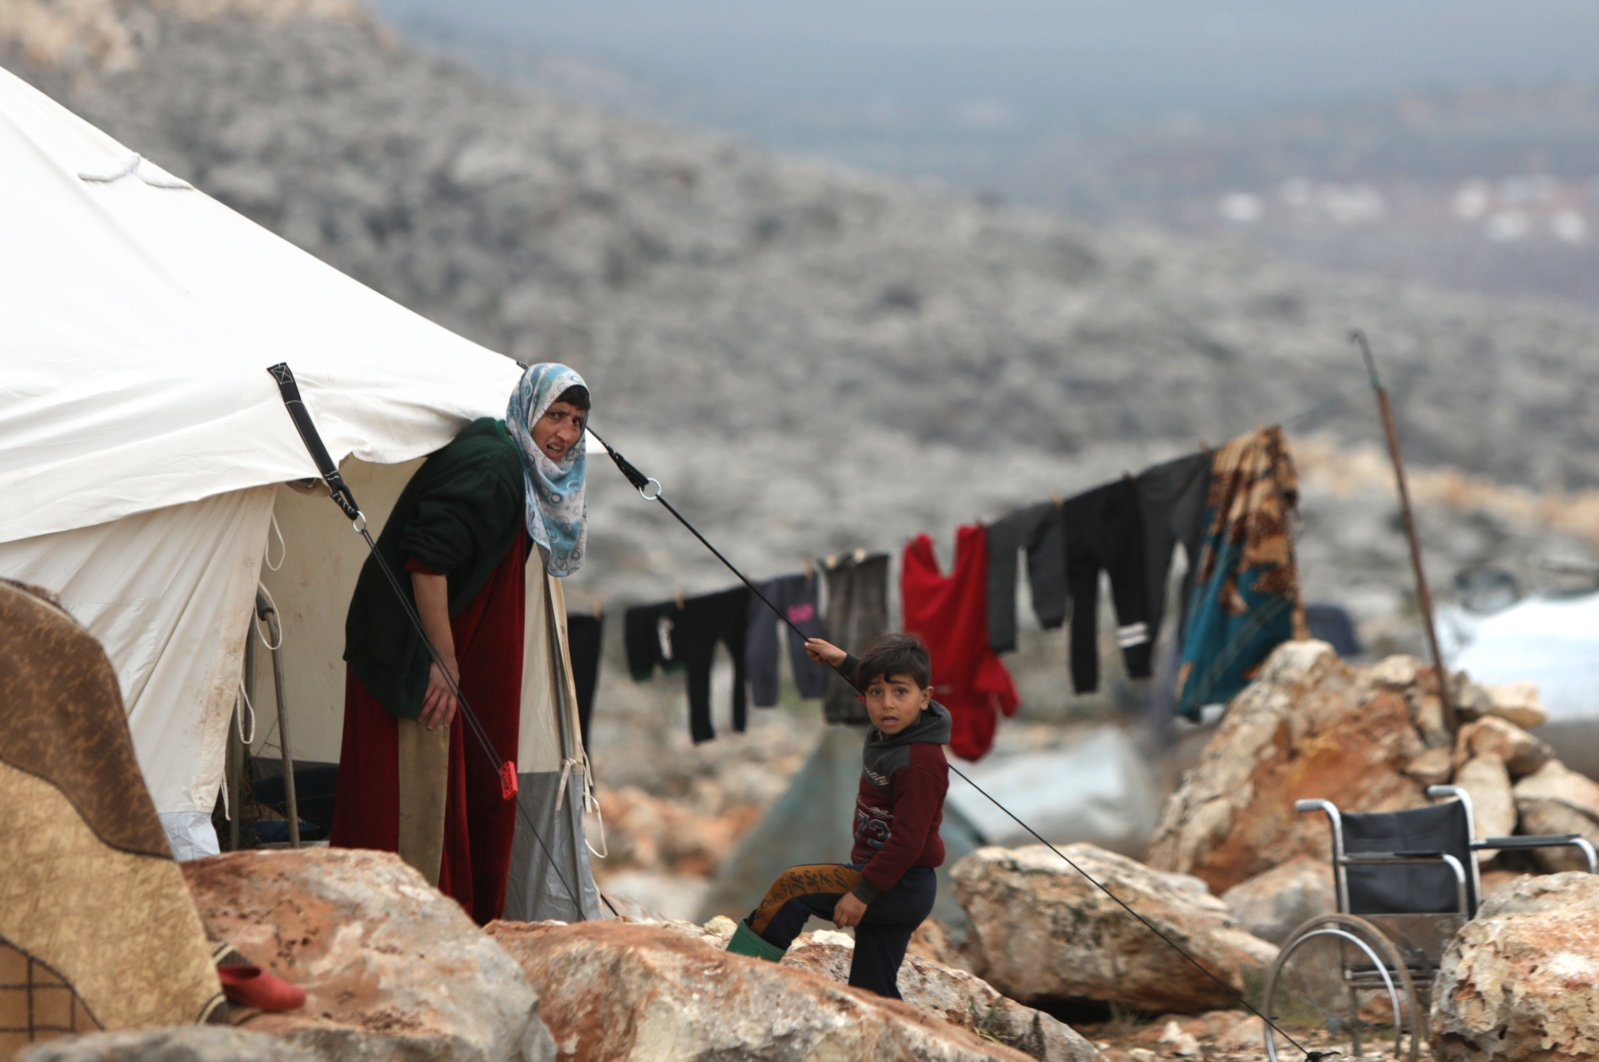 Syrians who fled pro-regime forces attacks in the Idlib and Aleppo provinces are pictured at a makeshift camp for displaced people, Feb.18, 2020. (AFP)